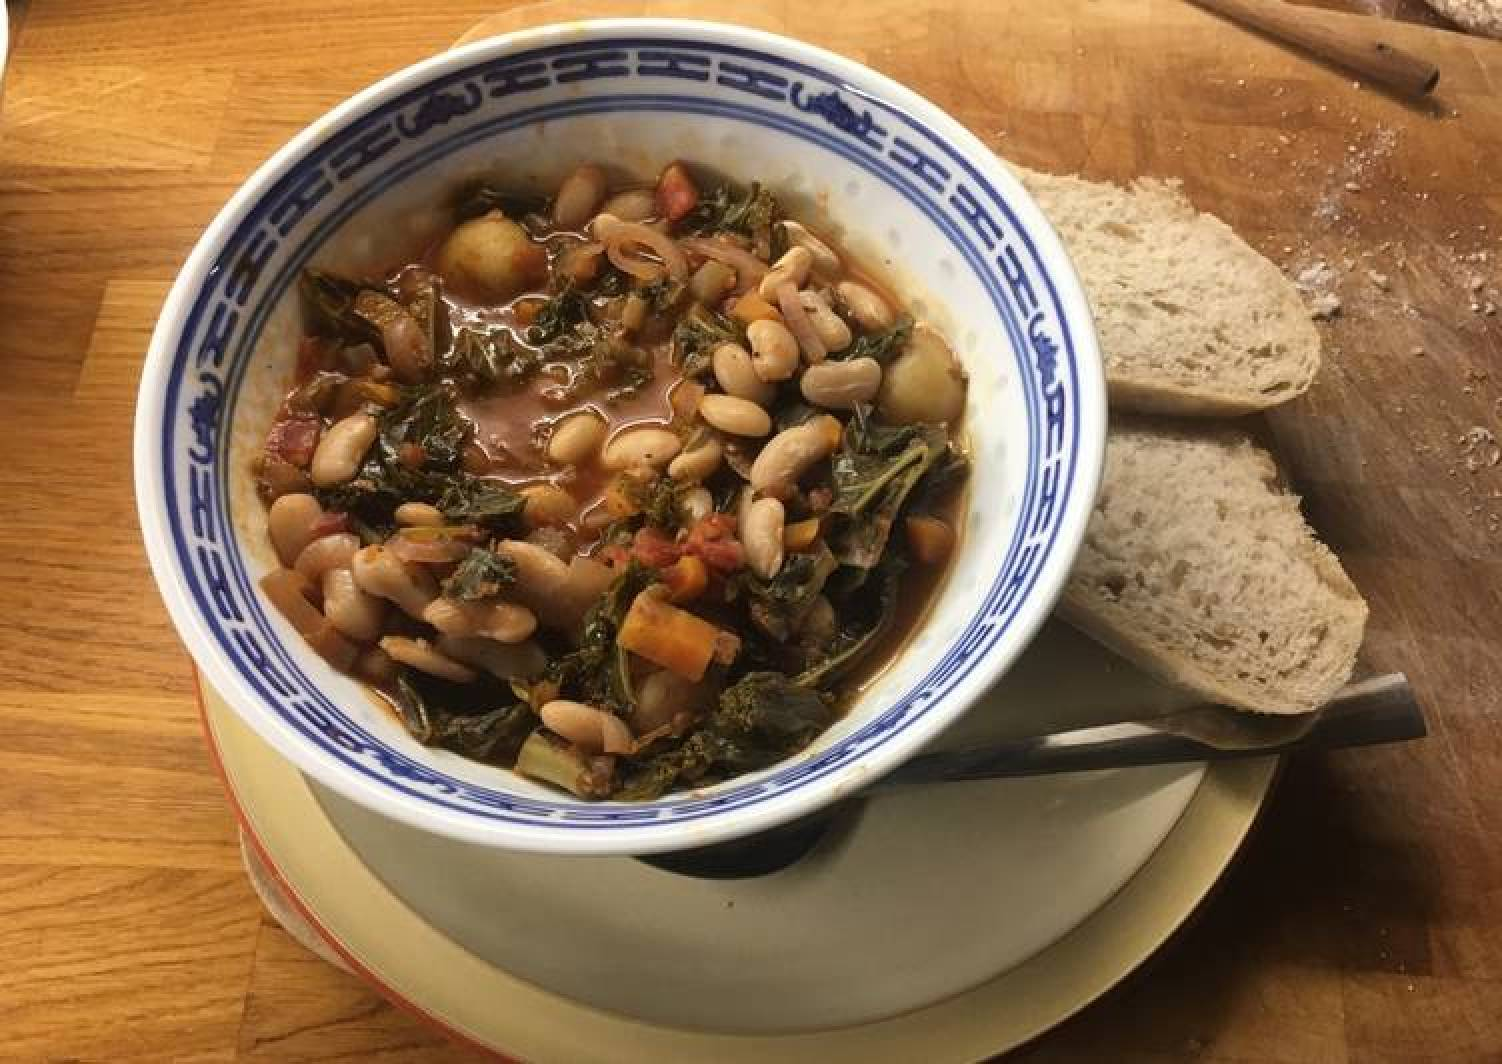 Italian Tomato Stew with Kale and Cannelini beans